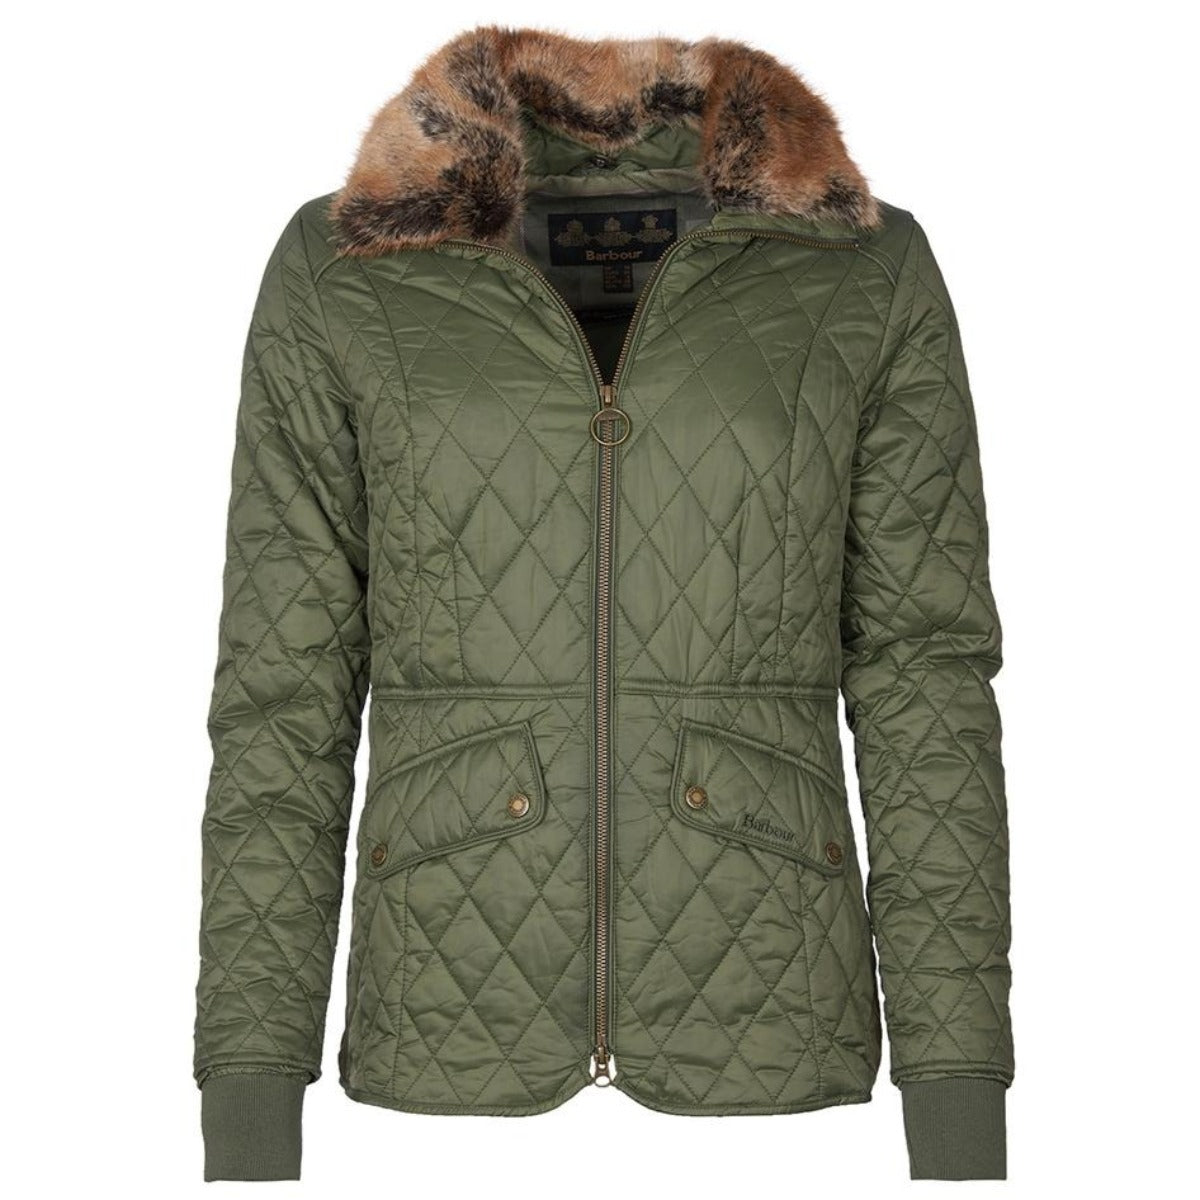 Barbour Women's Hawthorns Quilted Jacket